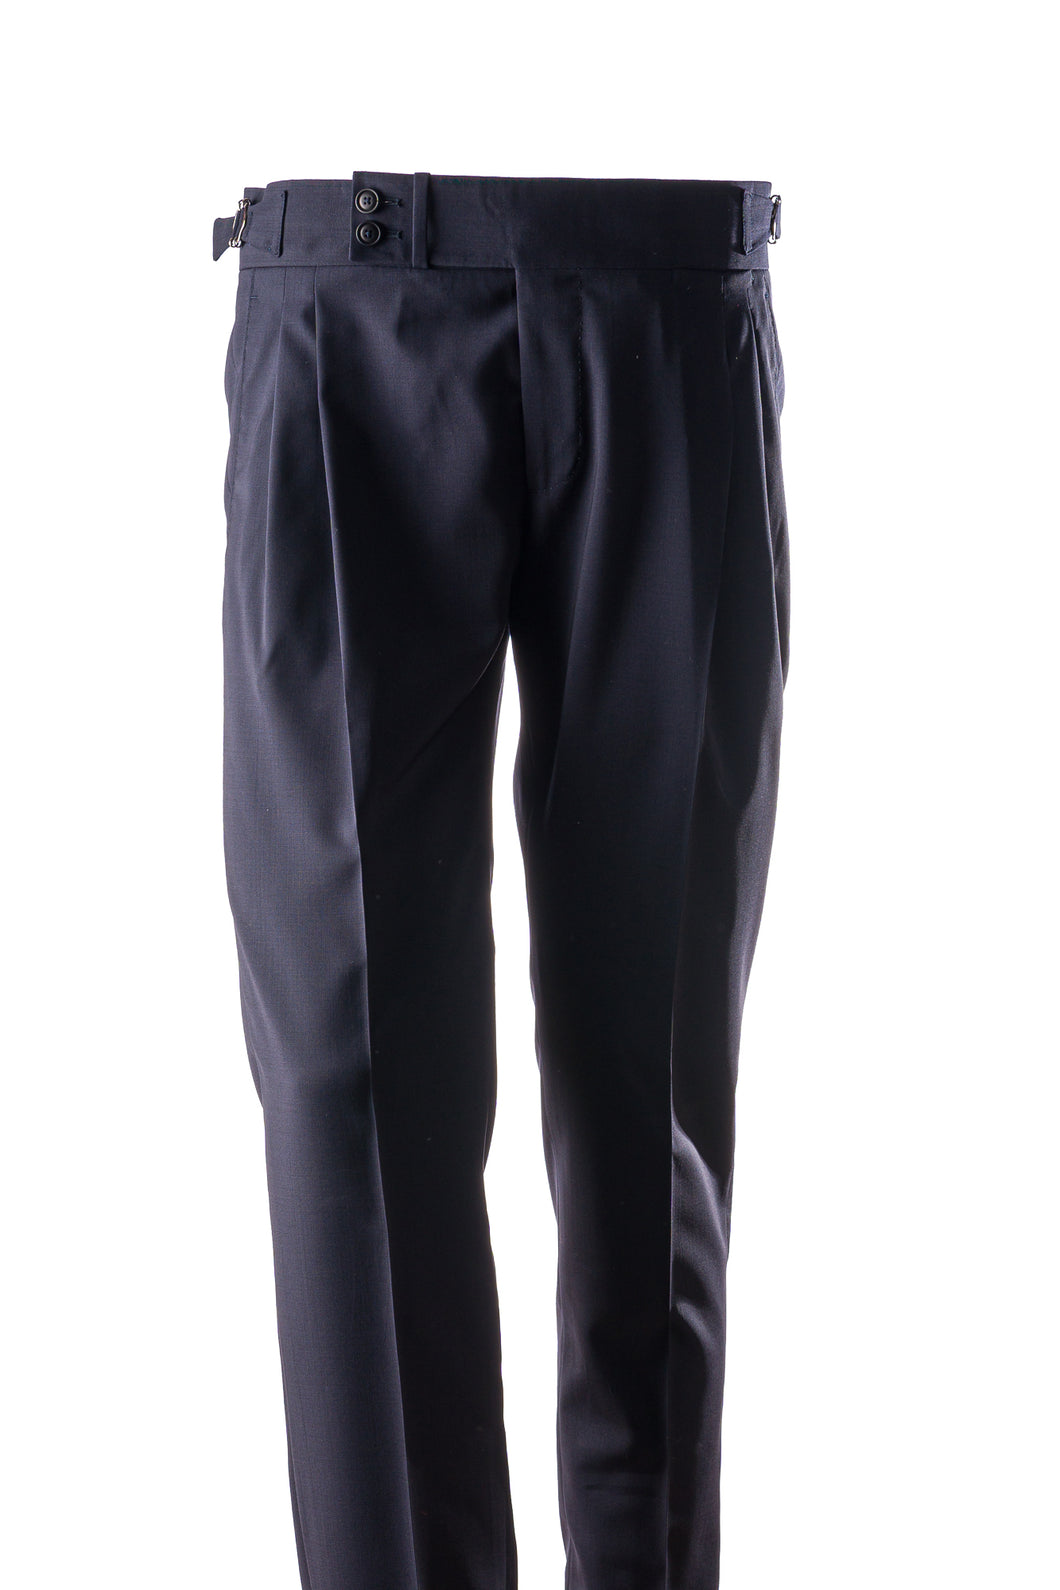 Navy Blue Wool men's trousers with side adjusters and sartorial details